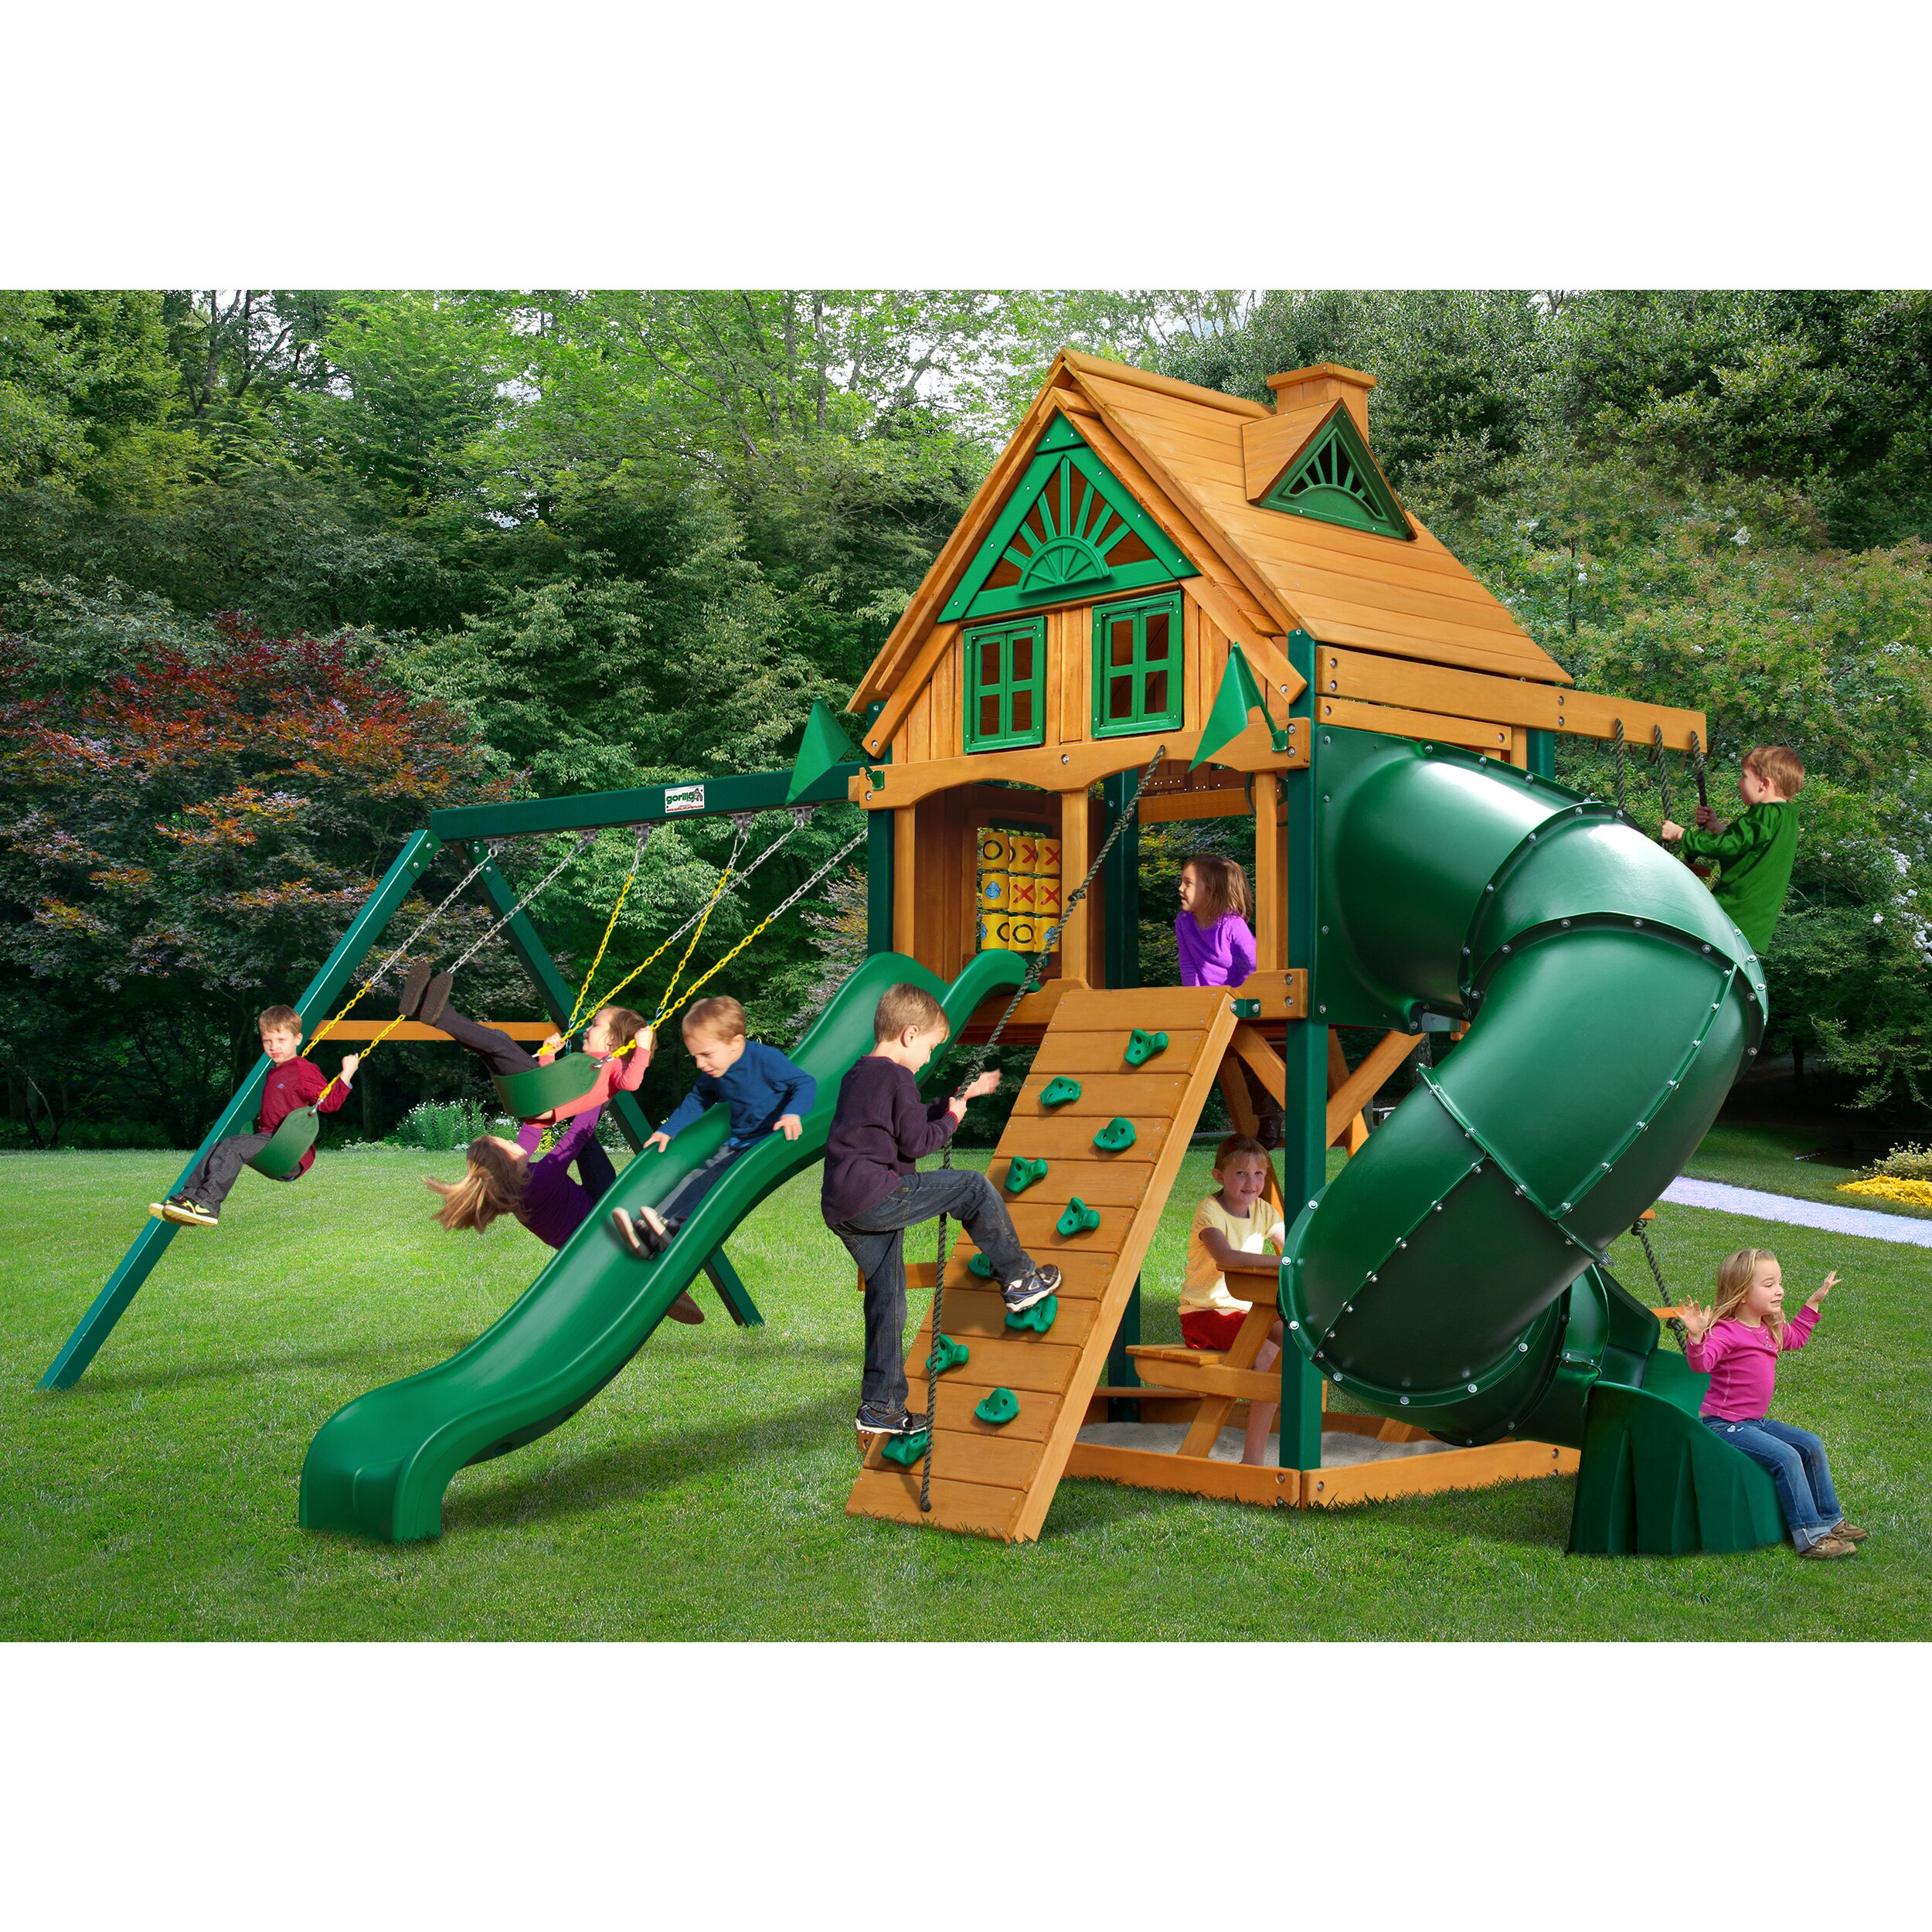 Gorilla playsets mountaineer treehouse swing set wayfair for Tree house swing set